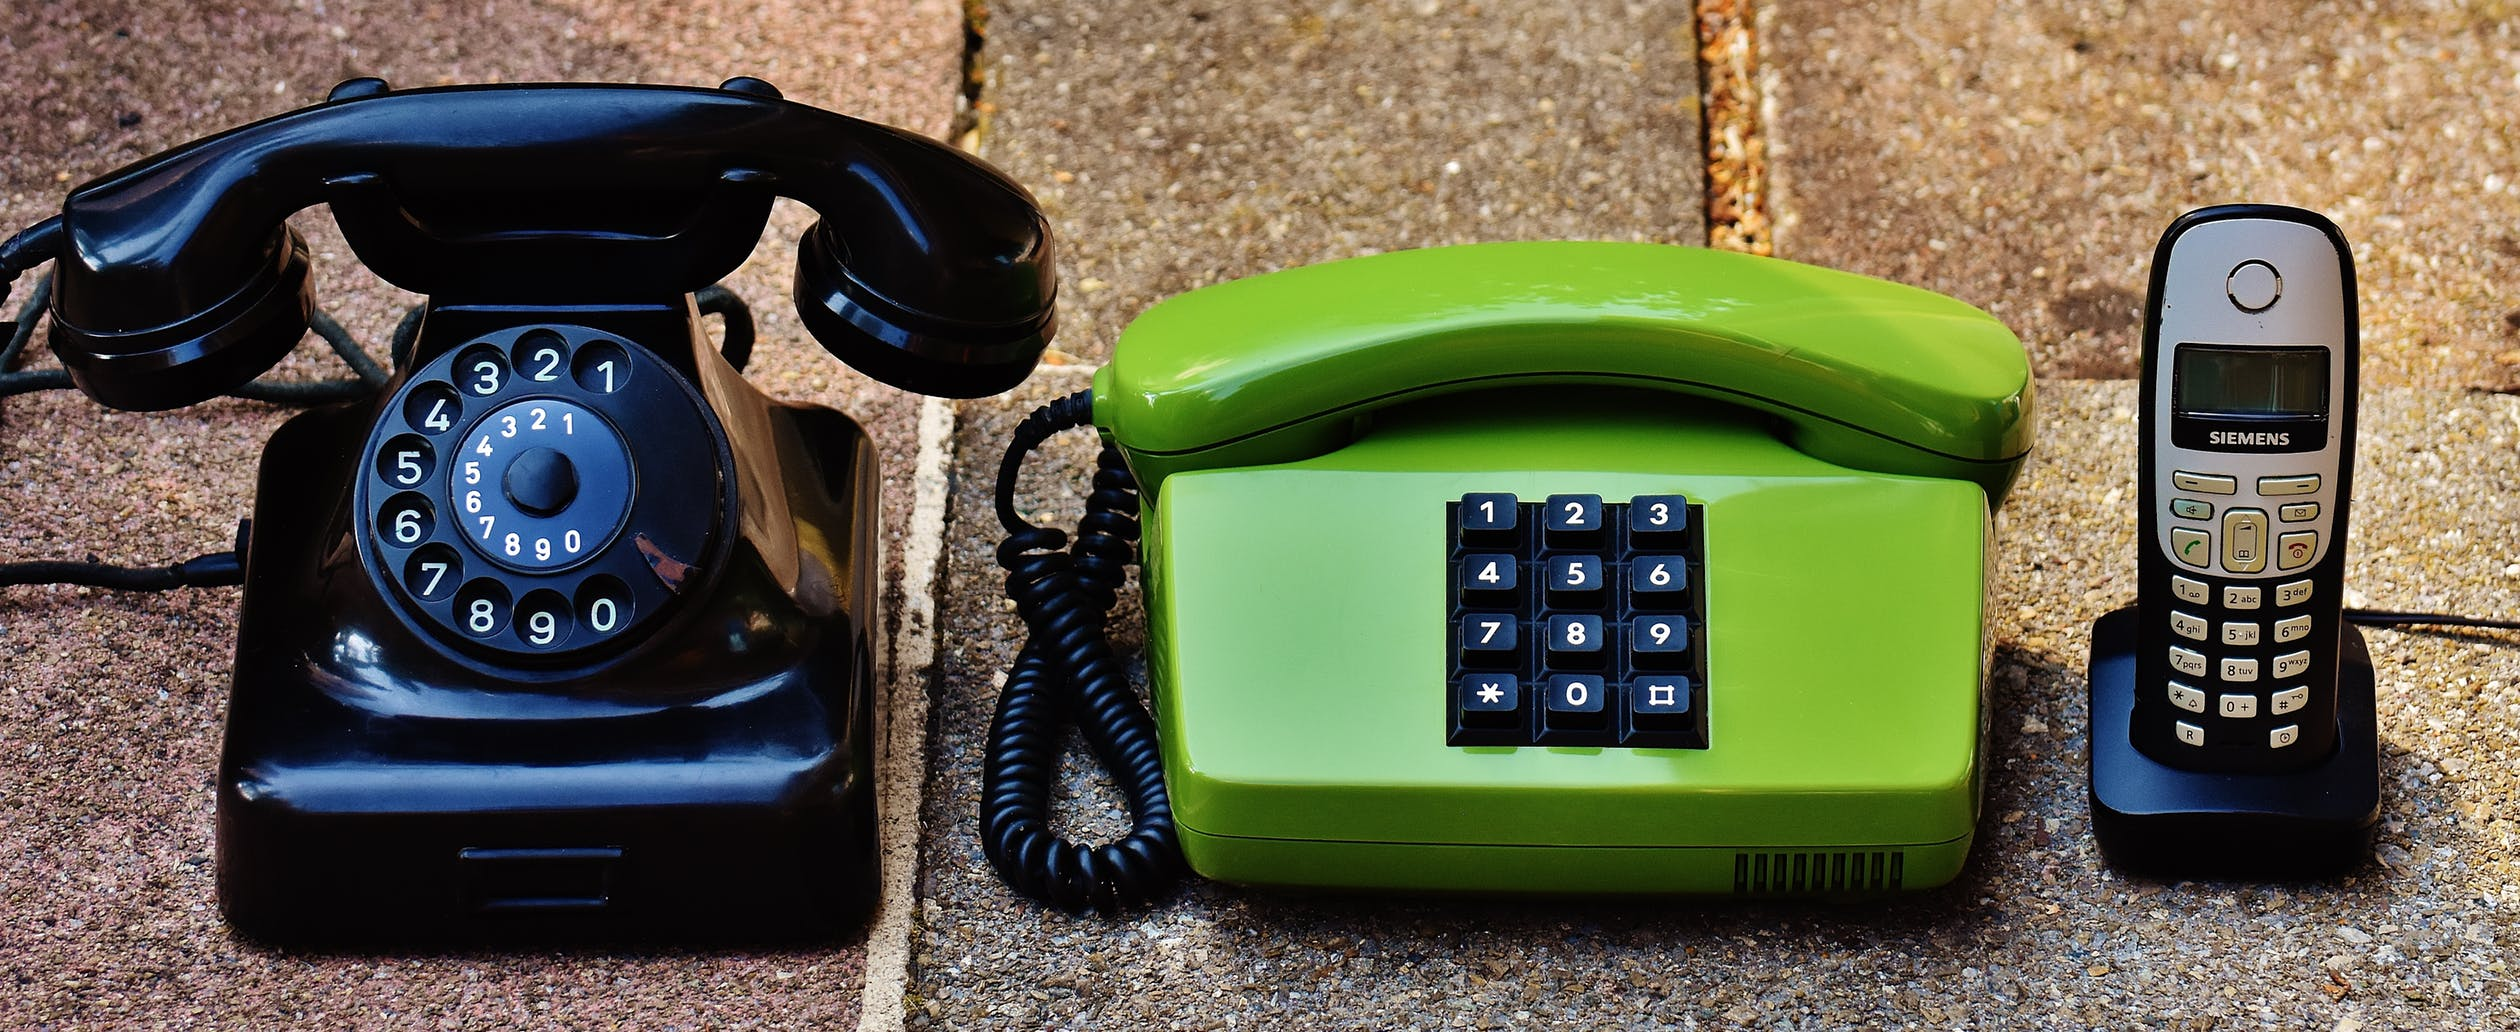 Are landlines becoming a thing of the past?